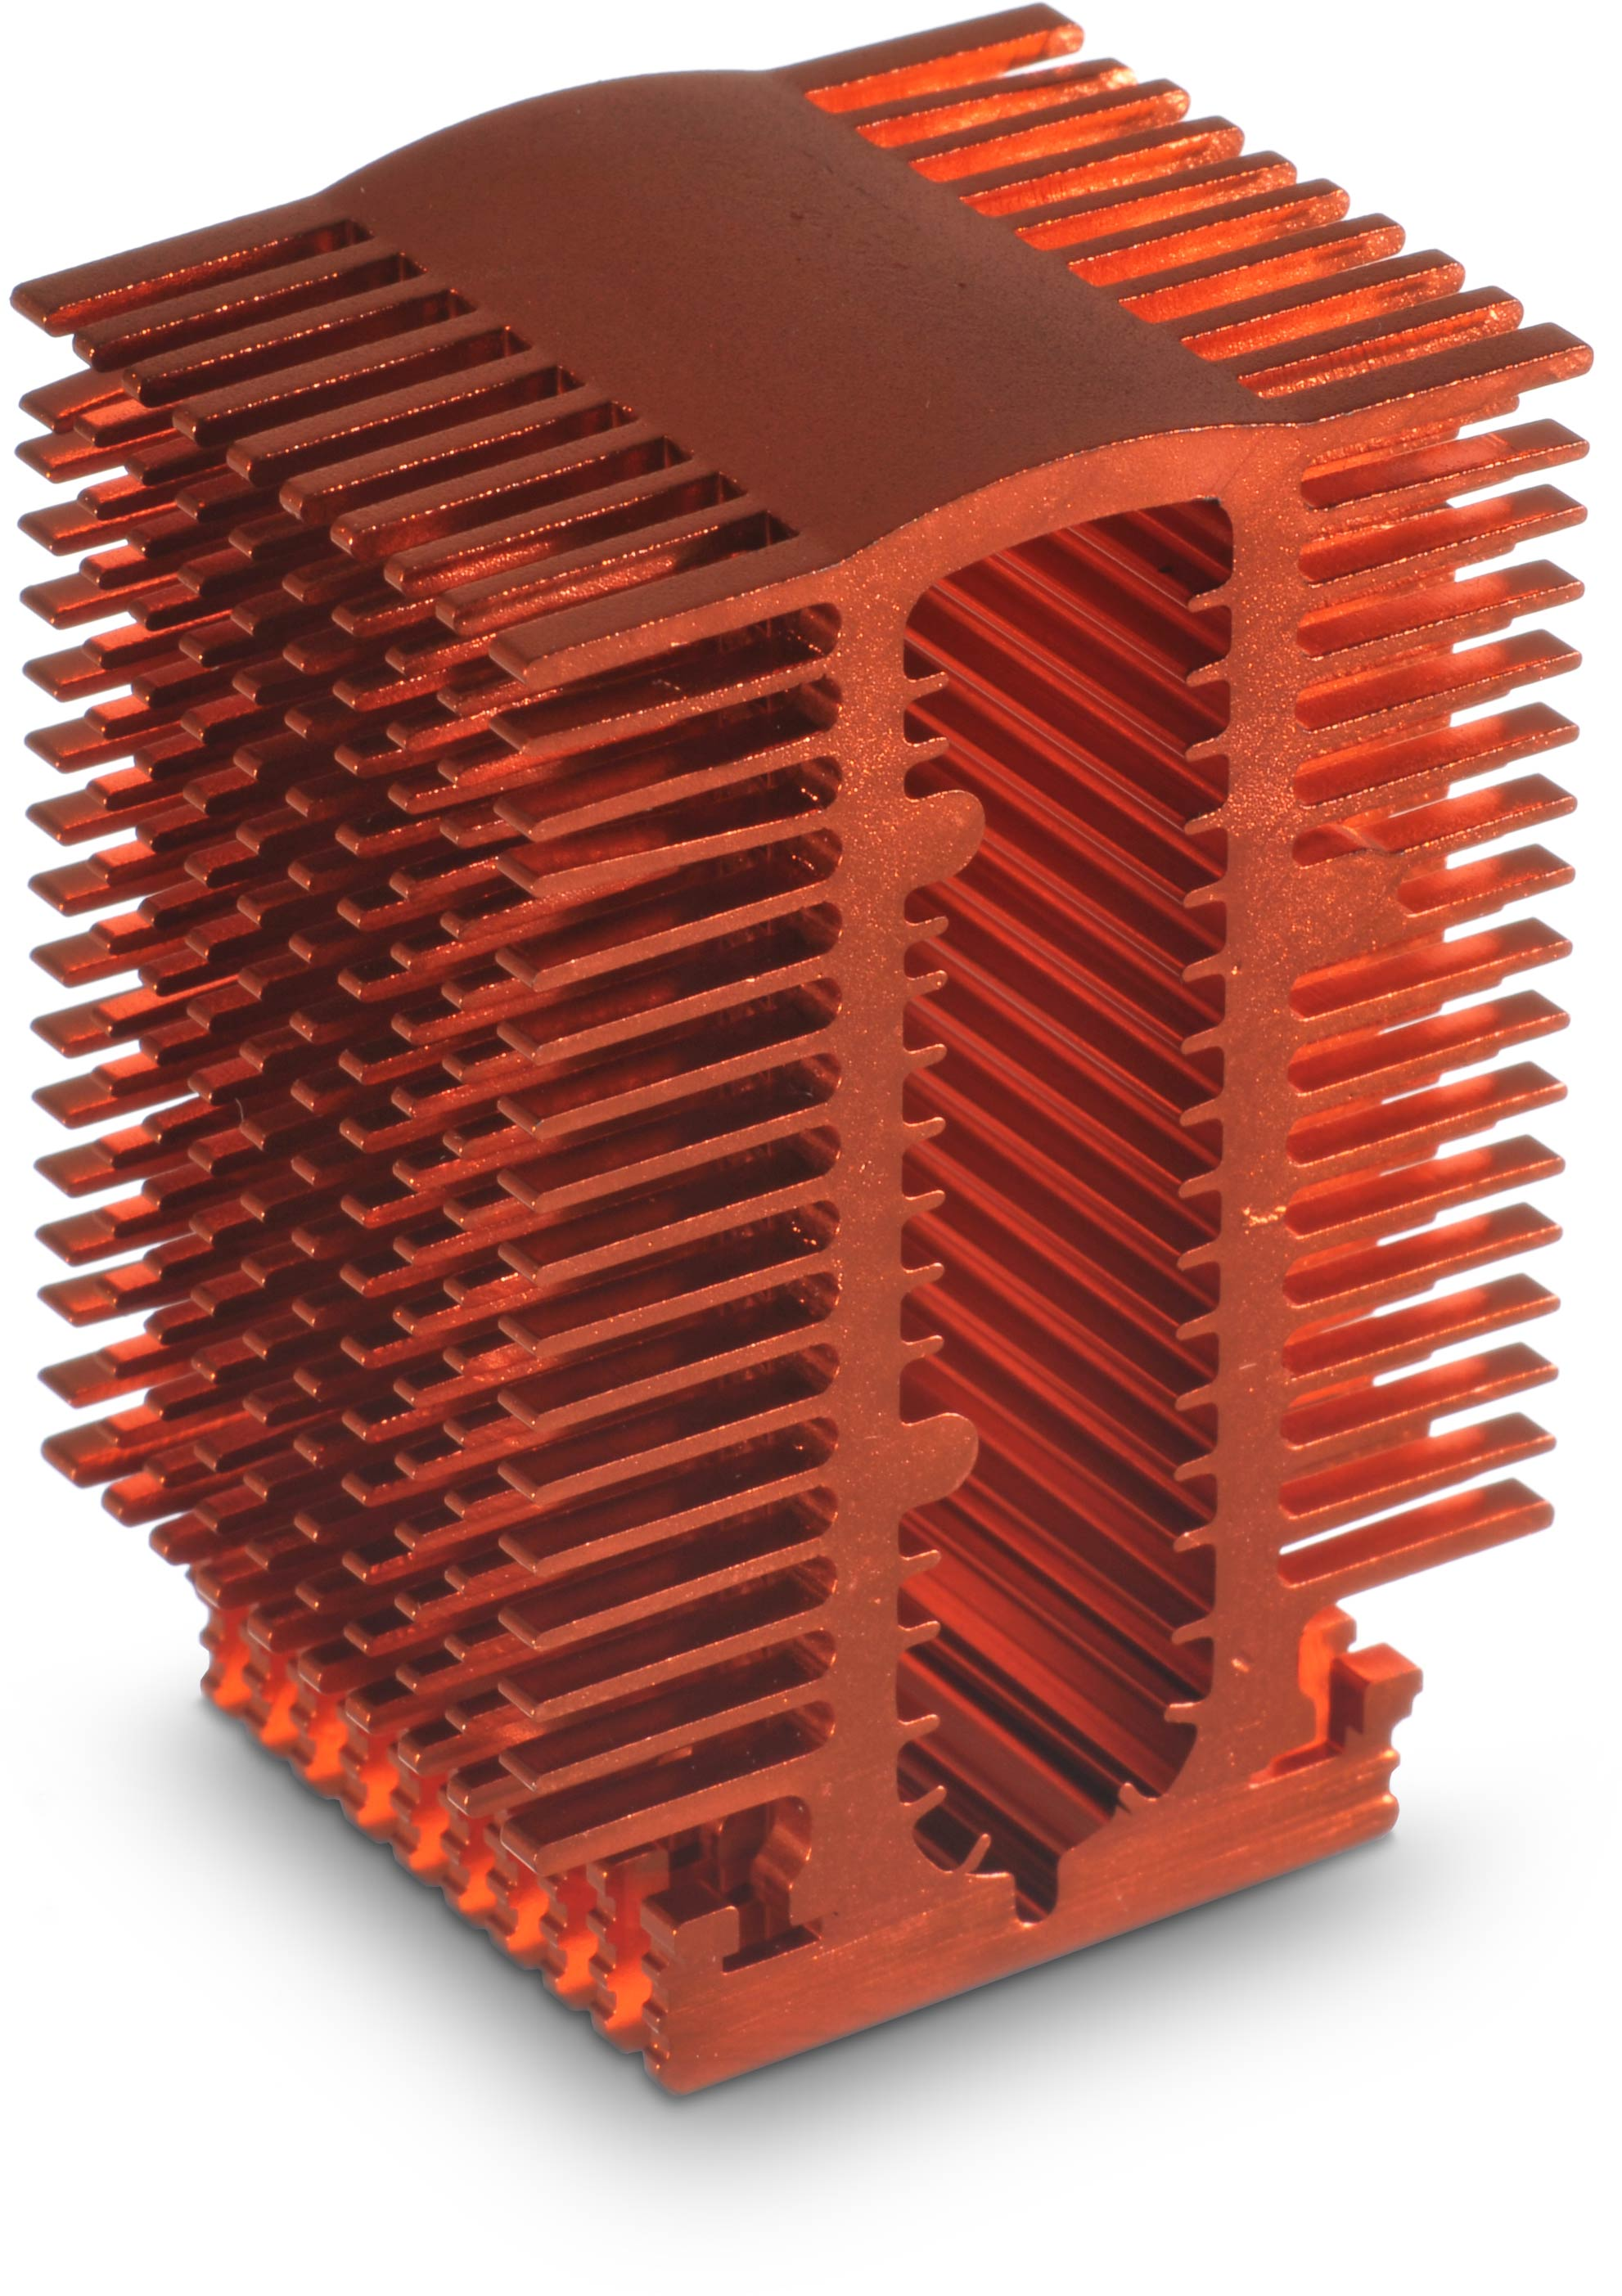 Fn C01 Fanless Northbridge Heatsink